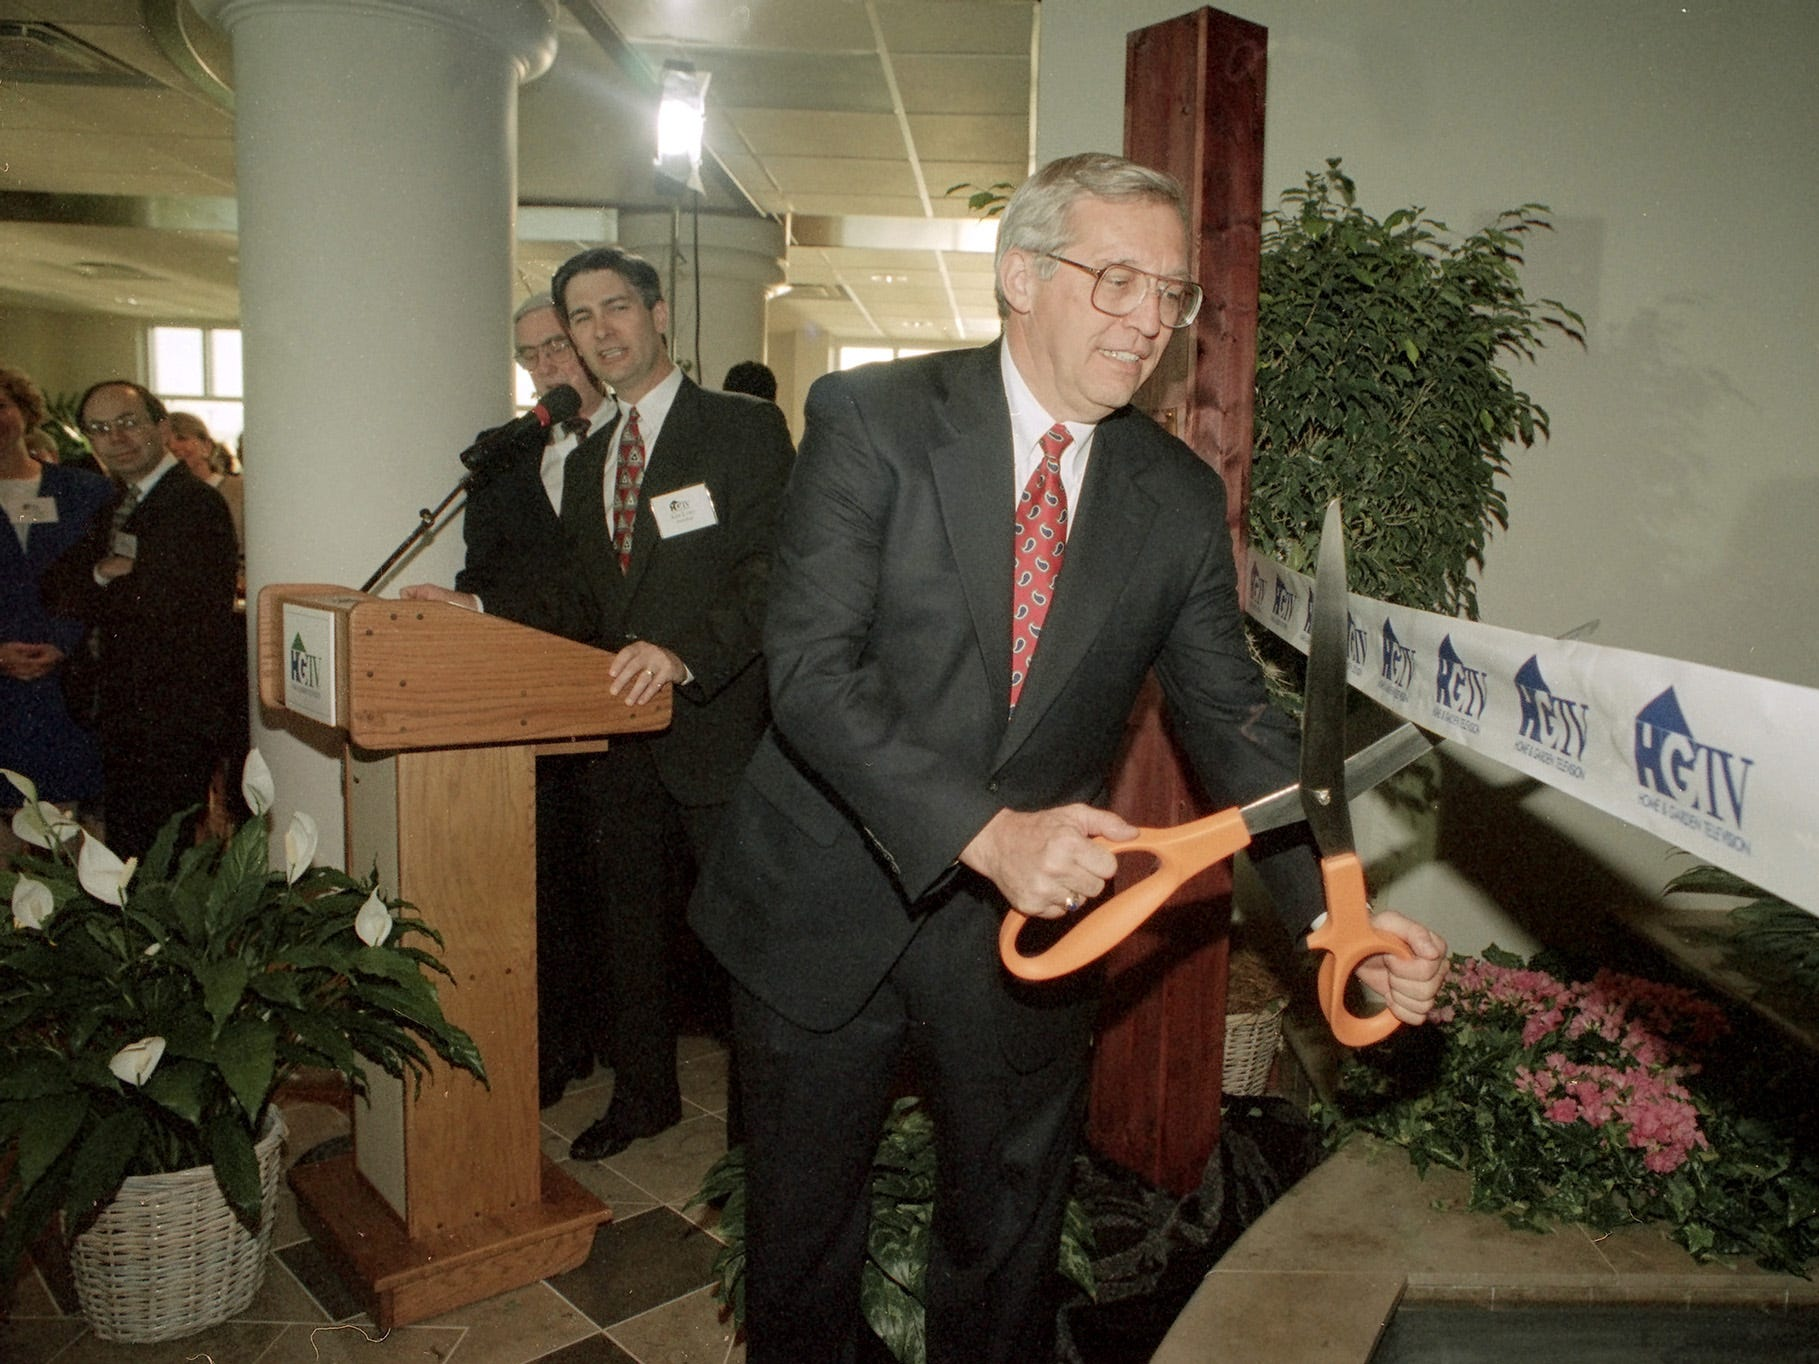 Gov. Don Sundquist cuts the ribbon on Home & Garden Television's new 44,000-squae-foot building on Monday night. Lawrence Leser, far left, chairman and chief executive officer of the E.W. Scripps Co., flipped the switch at 7 p.m., activating the first transmission from the Knoxville facility.  At center is Ken Lowe, president  of HGTV.